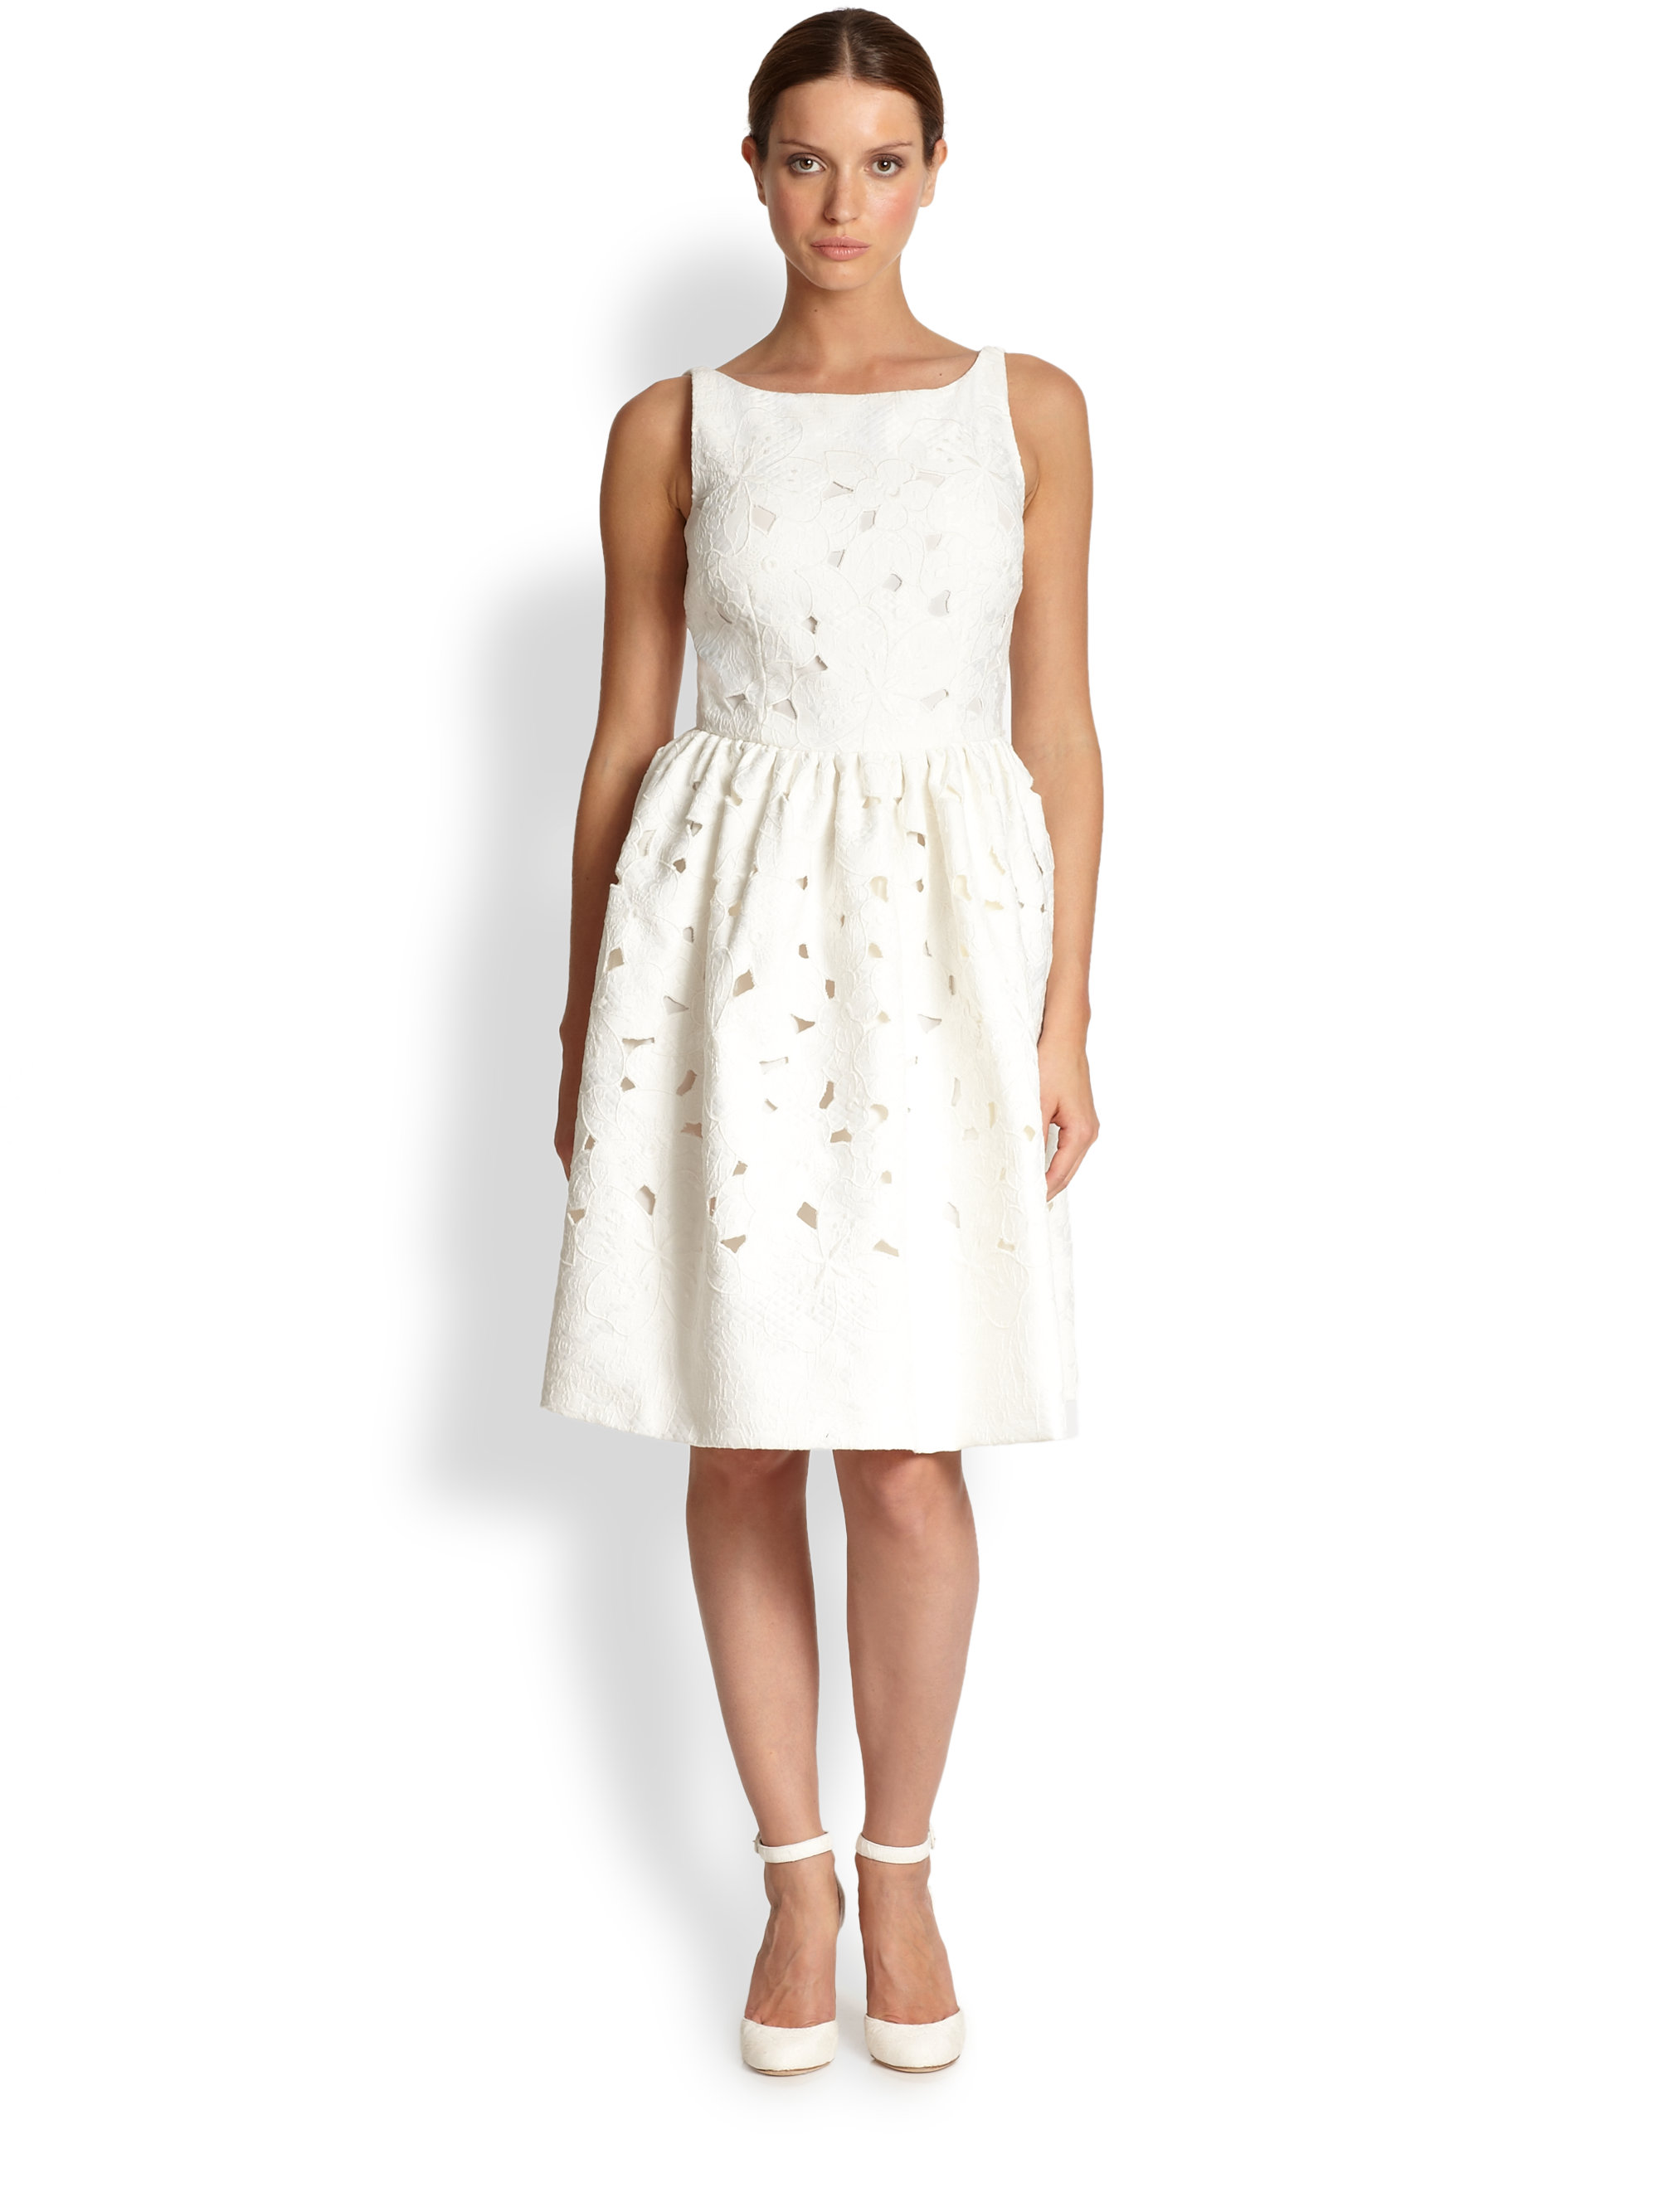 Dolce &amp- gabbana Eyelet Lace Dress in White - Lyst